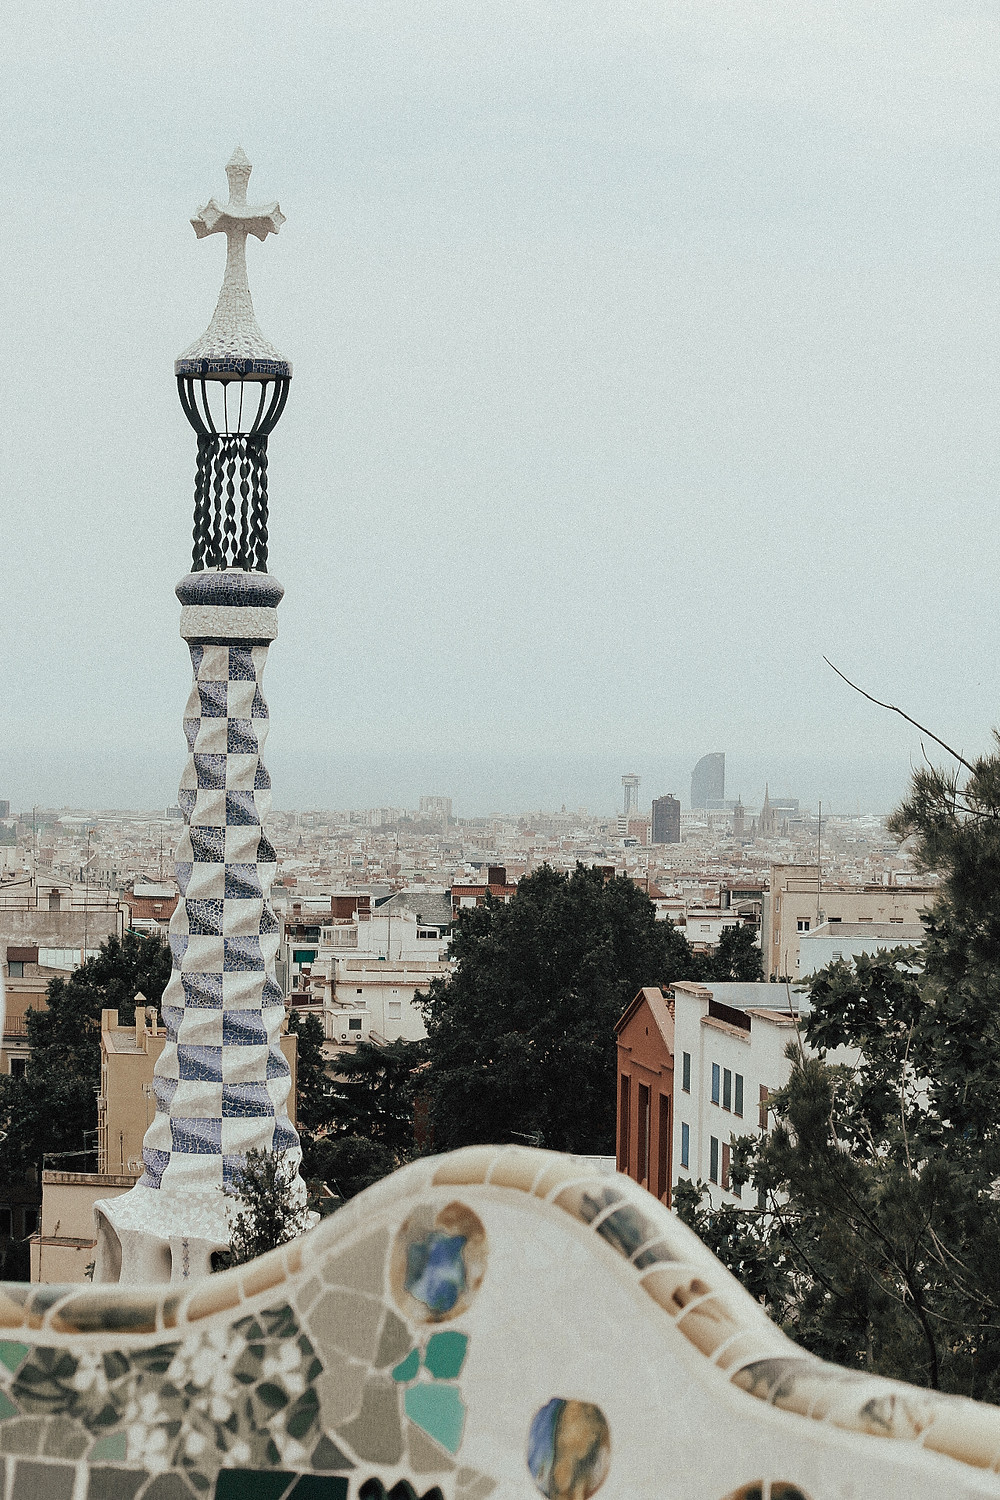 park guëll was top on my list of places to visit in barcelona.